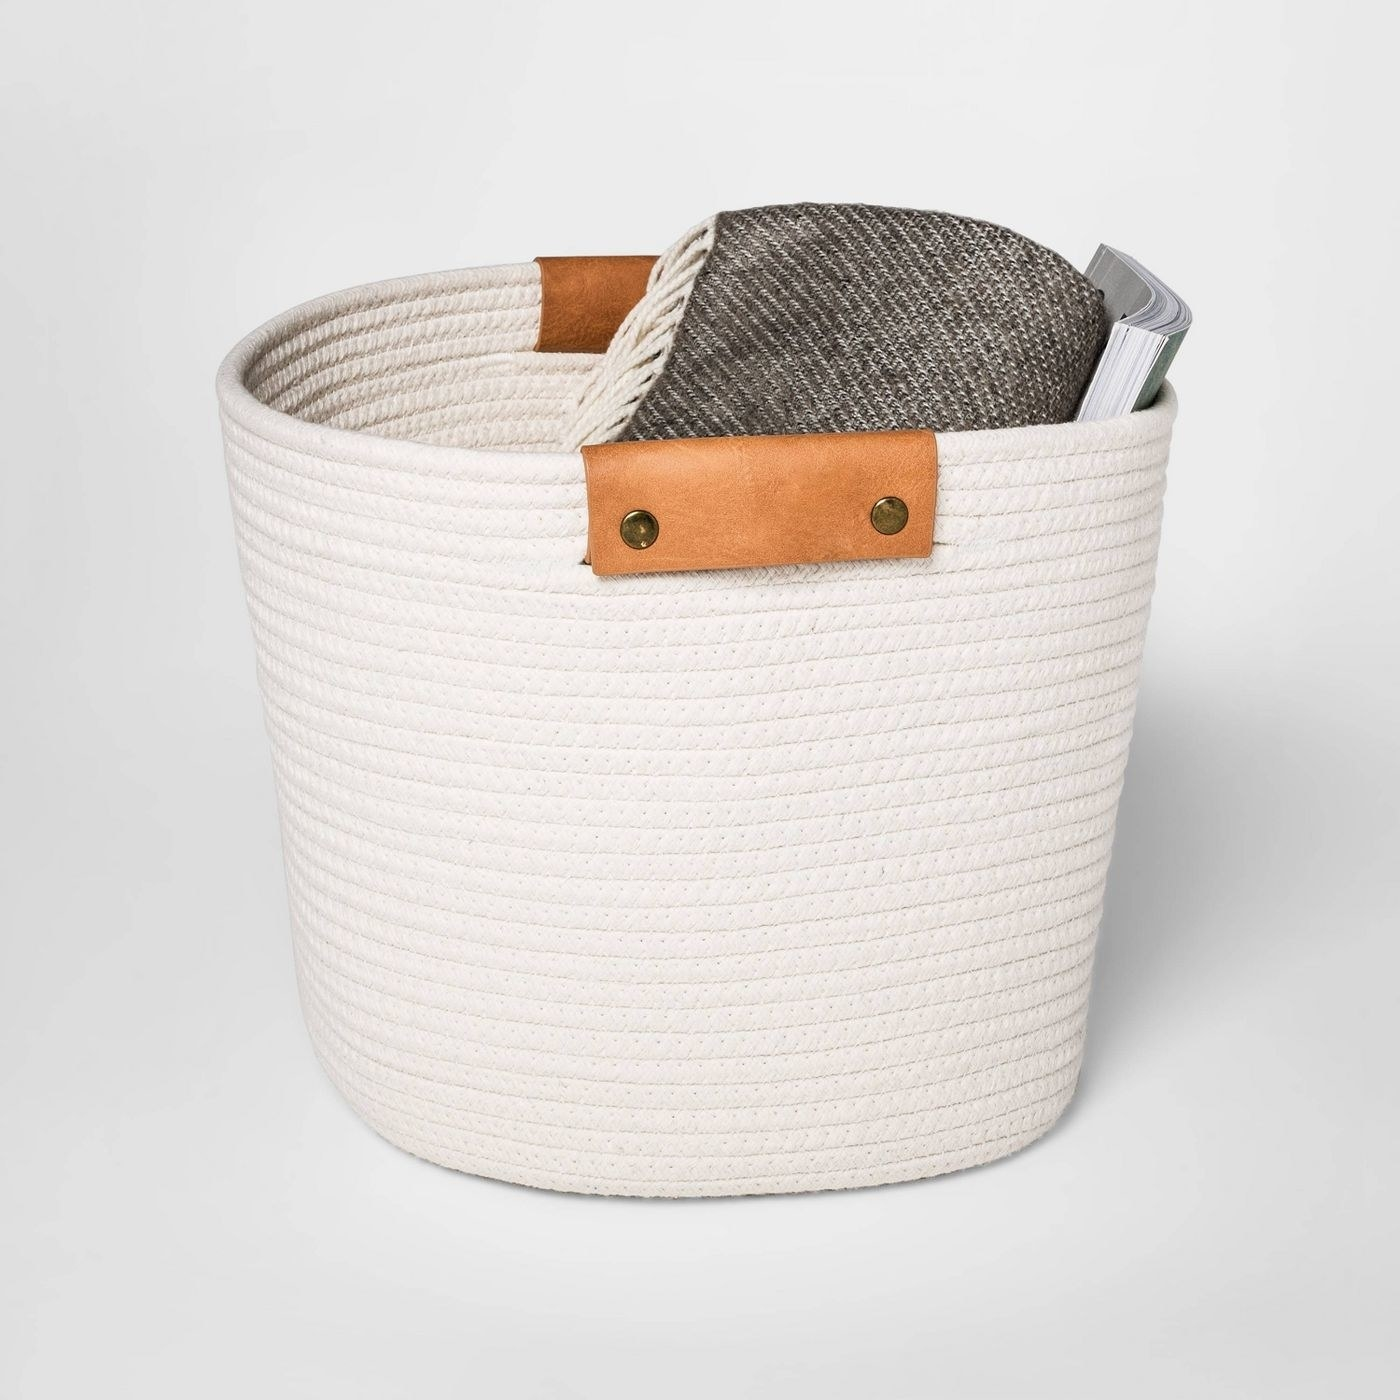 A cream coiled rope basket